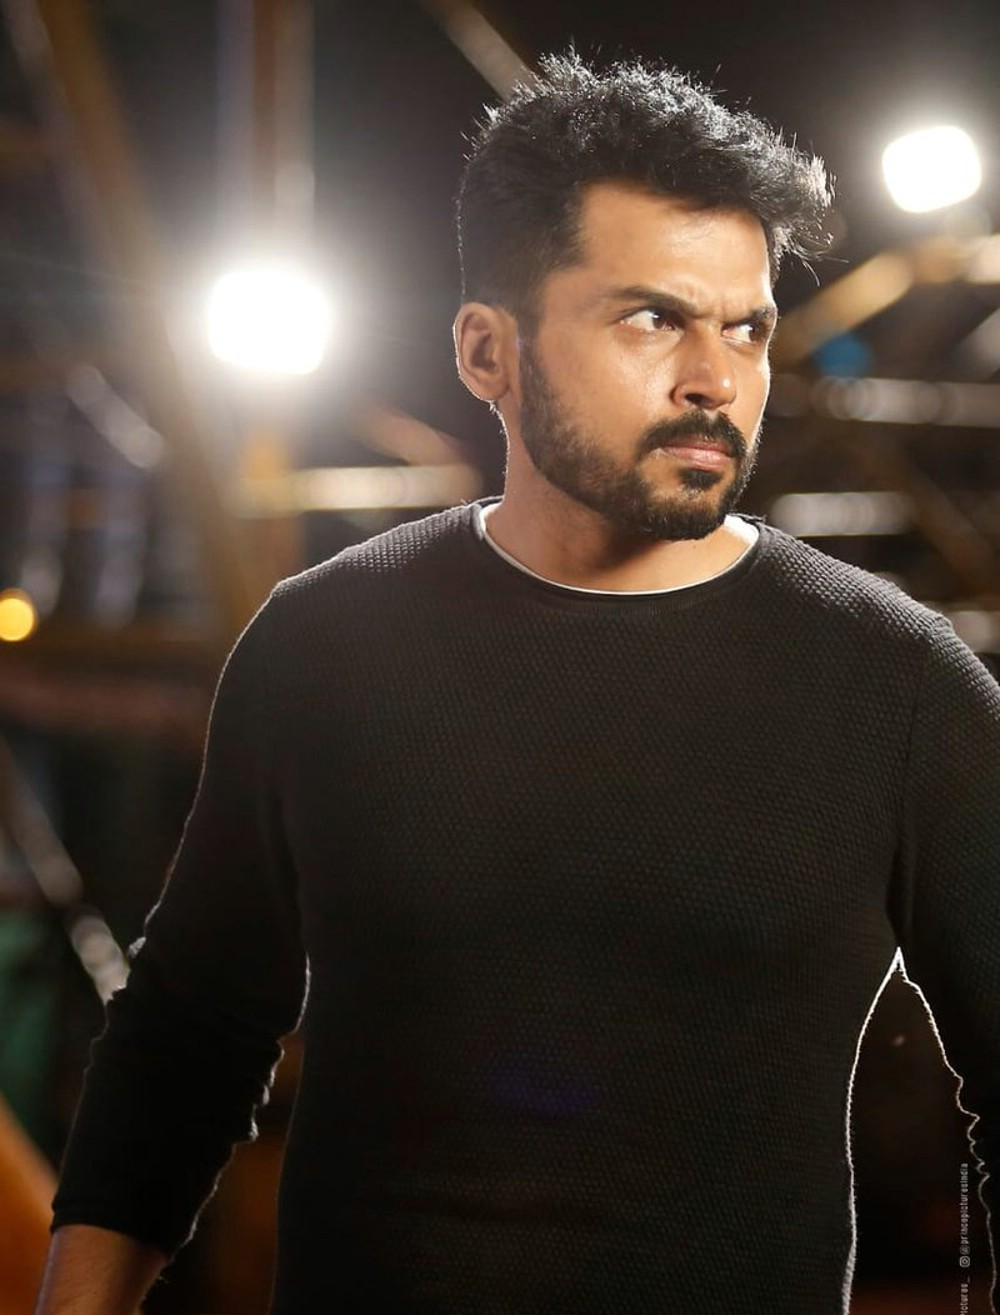 dev-movie-stills-hd-karthi-3